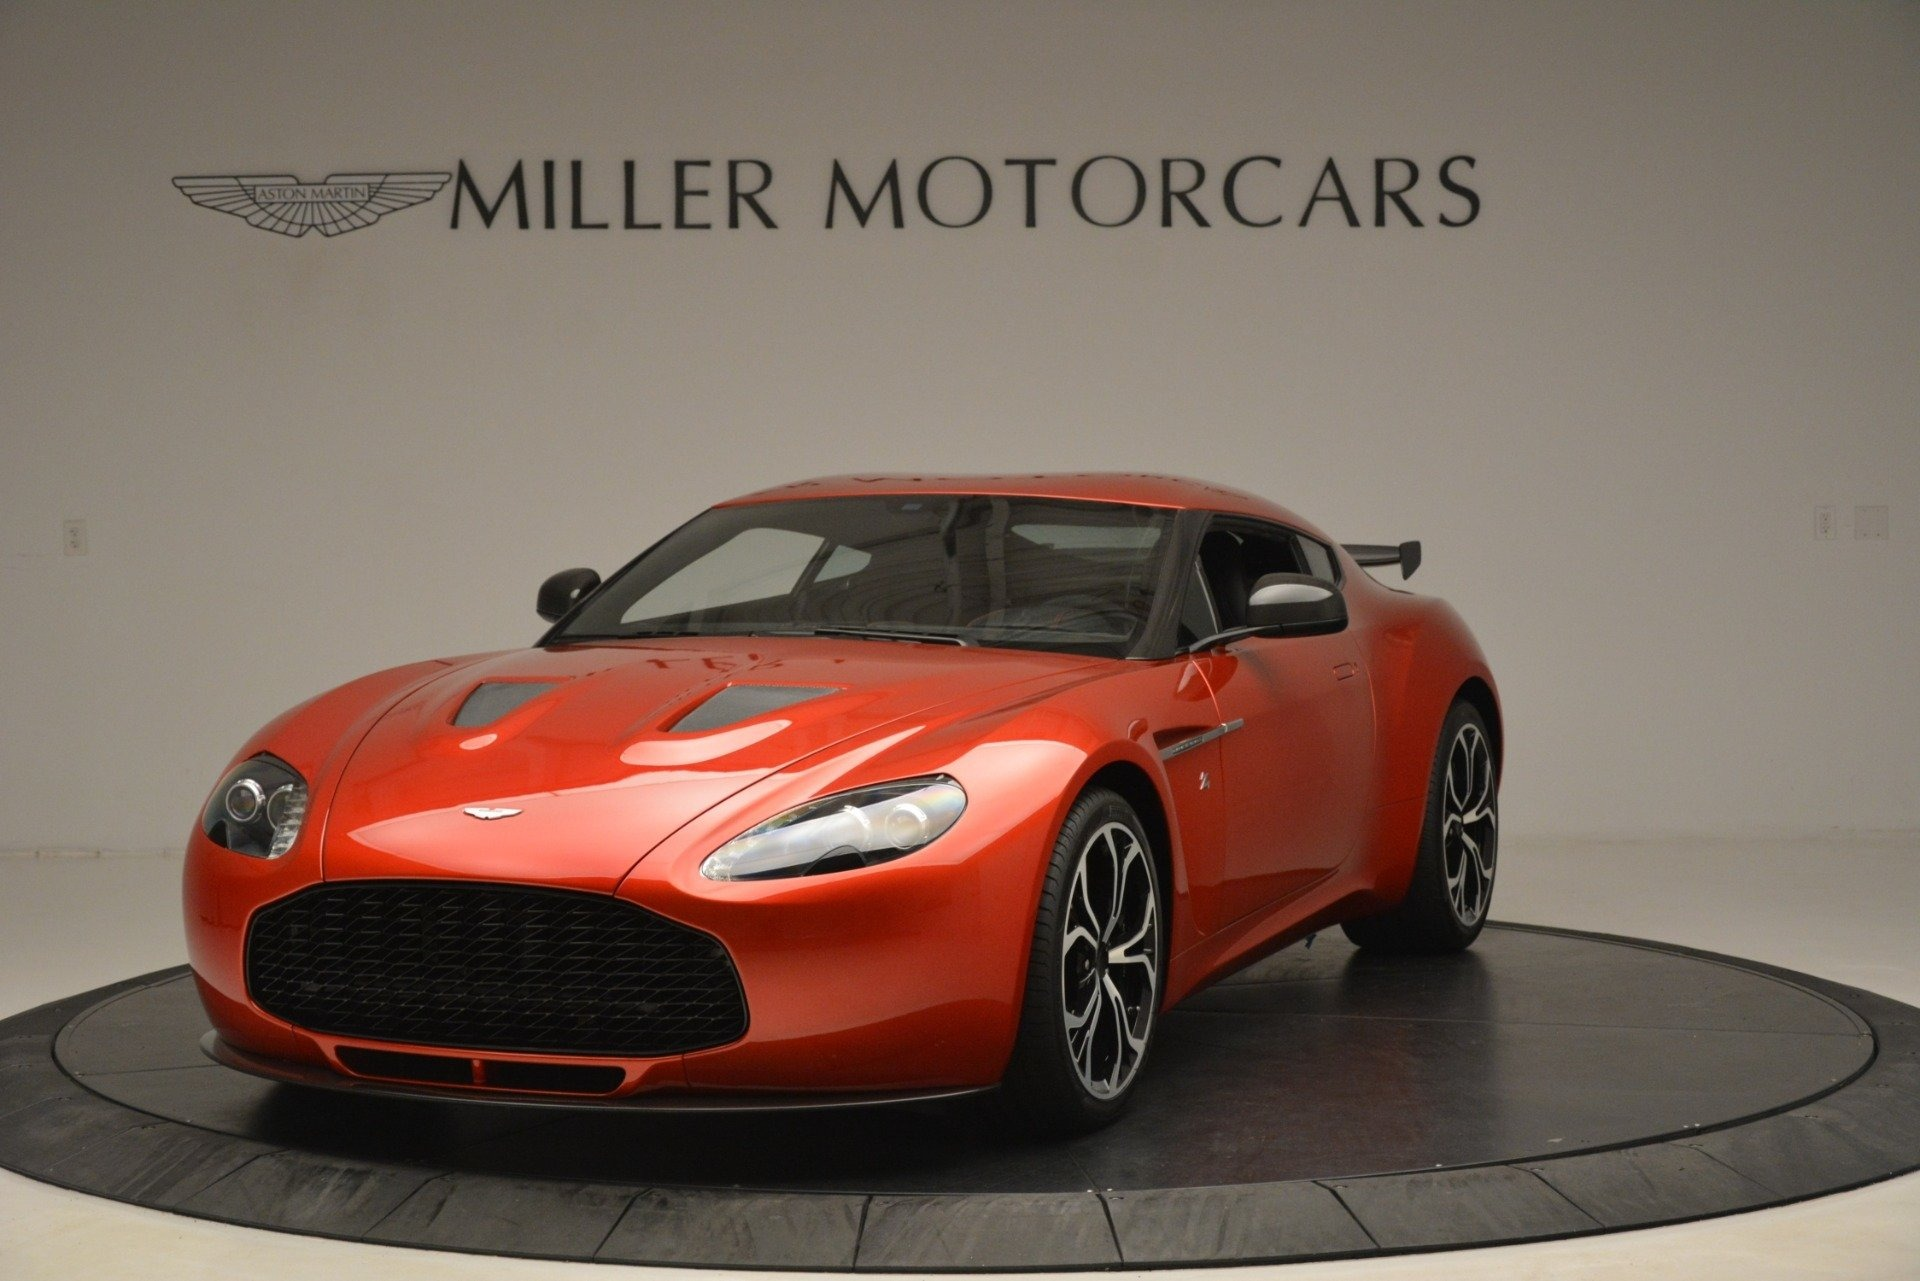 Used 2013 Aston Martin V12 Zagato Coupe for sale Sold at Rolls-Royce Motor Cars Greenwich in Greenwich CT 06830 1